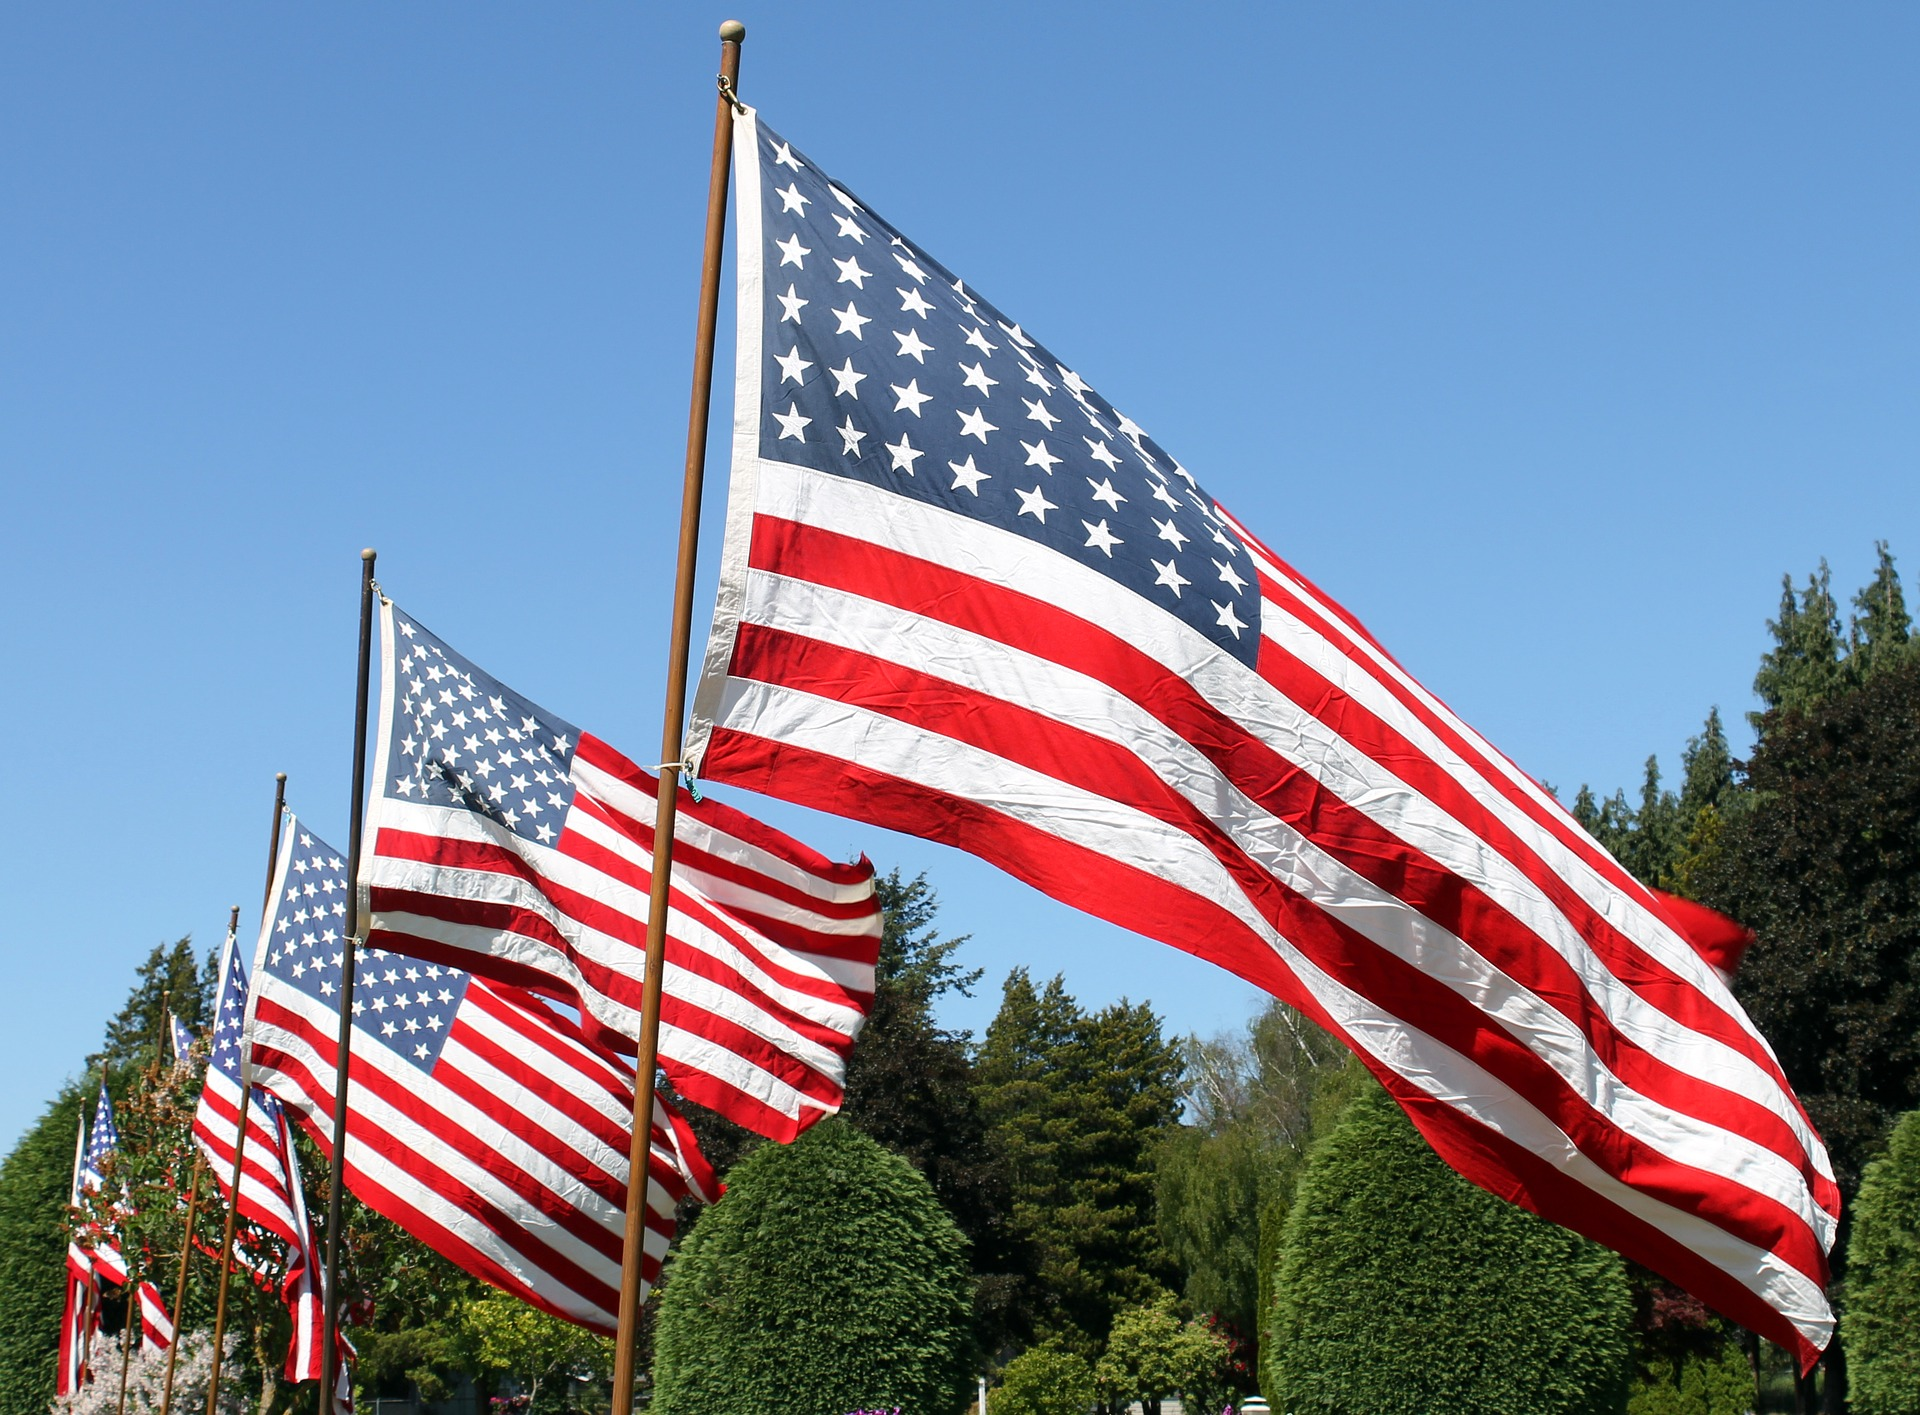 Memorial Day Flag Waving Image May 2020 Digital Signage